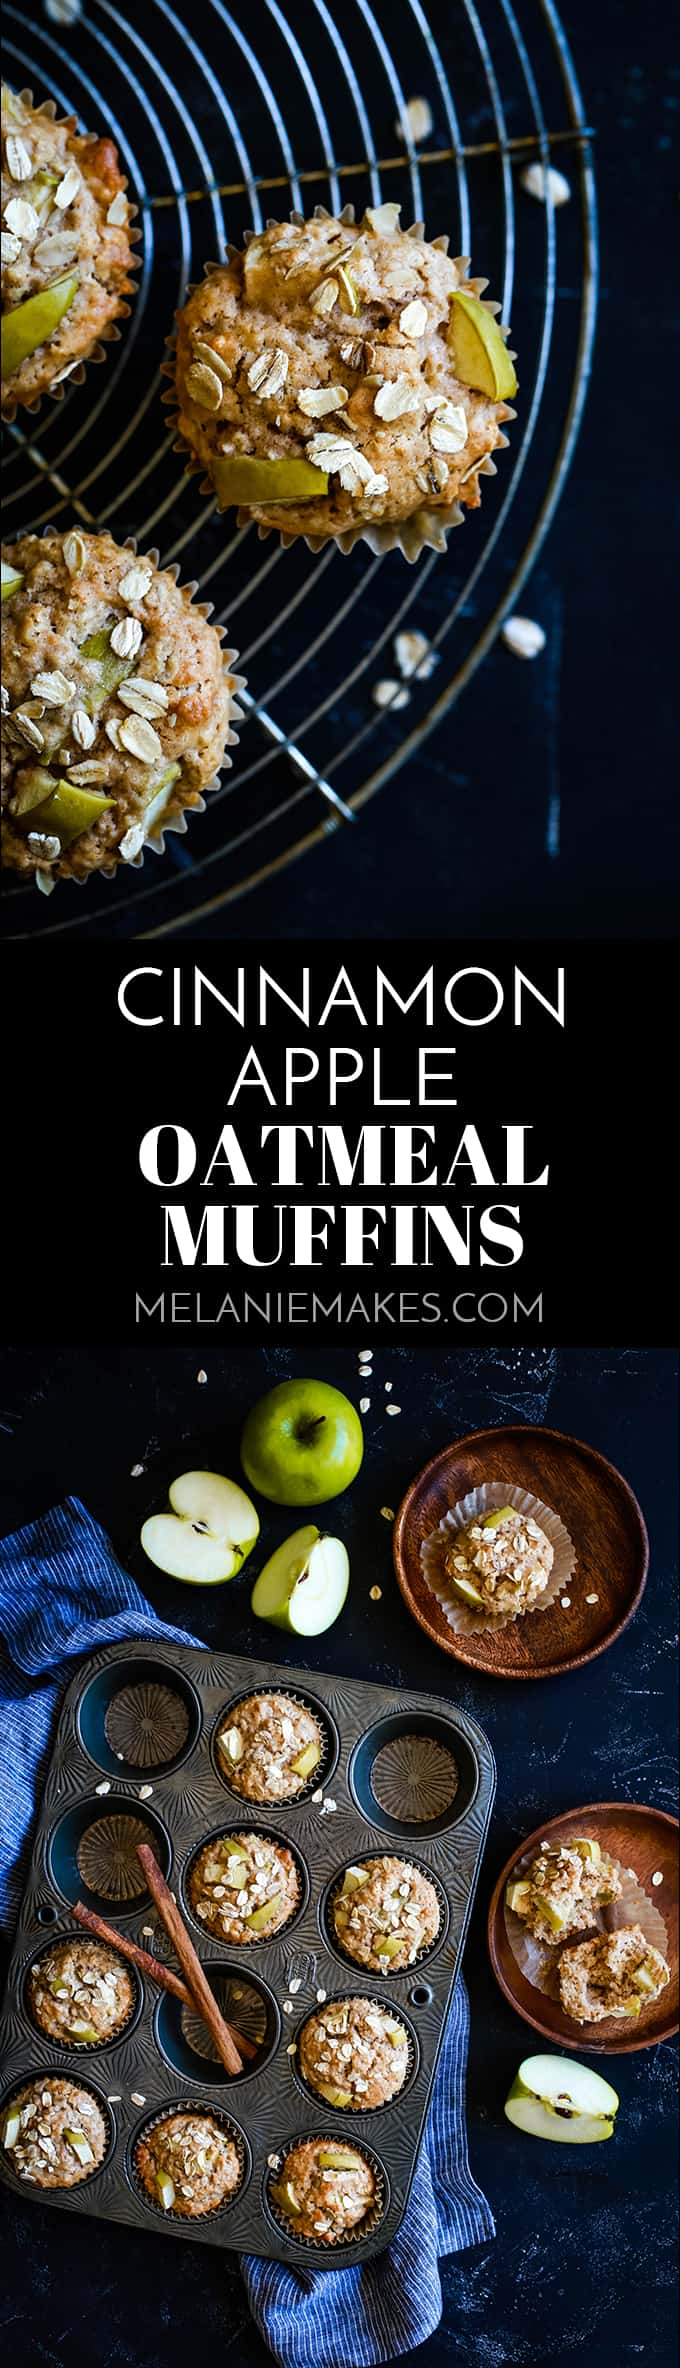 Just five minutes of prep is all that stands between you and a dozen of these delicious Cinnamon Apple Oatmeal Muffins.  I guarantee you'll love my shortcut ingredient!